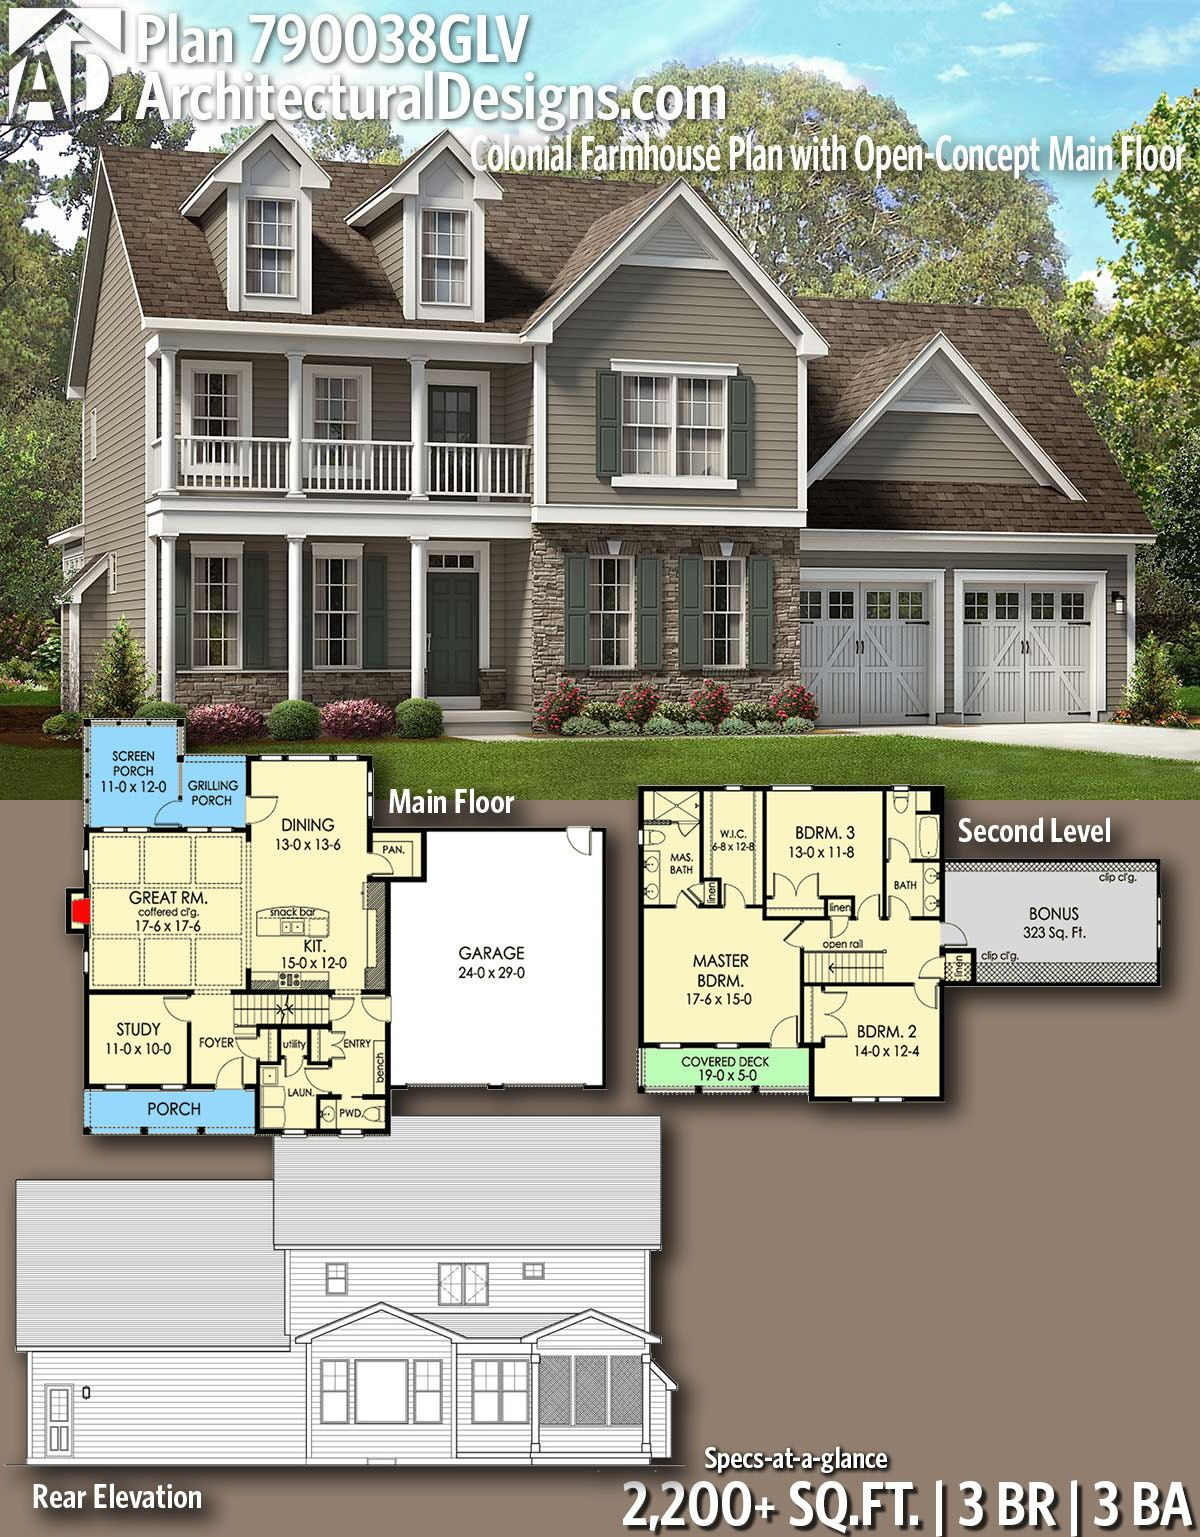 Plan 790038glv Colonial Farmhouse Plan With Open Concept Main Floor Basement House Plans Sims House Plans House Plans Farmhouse